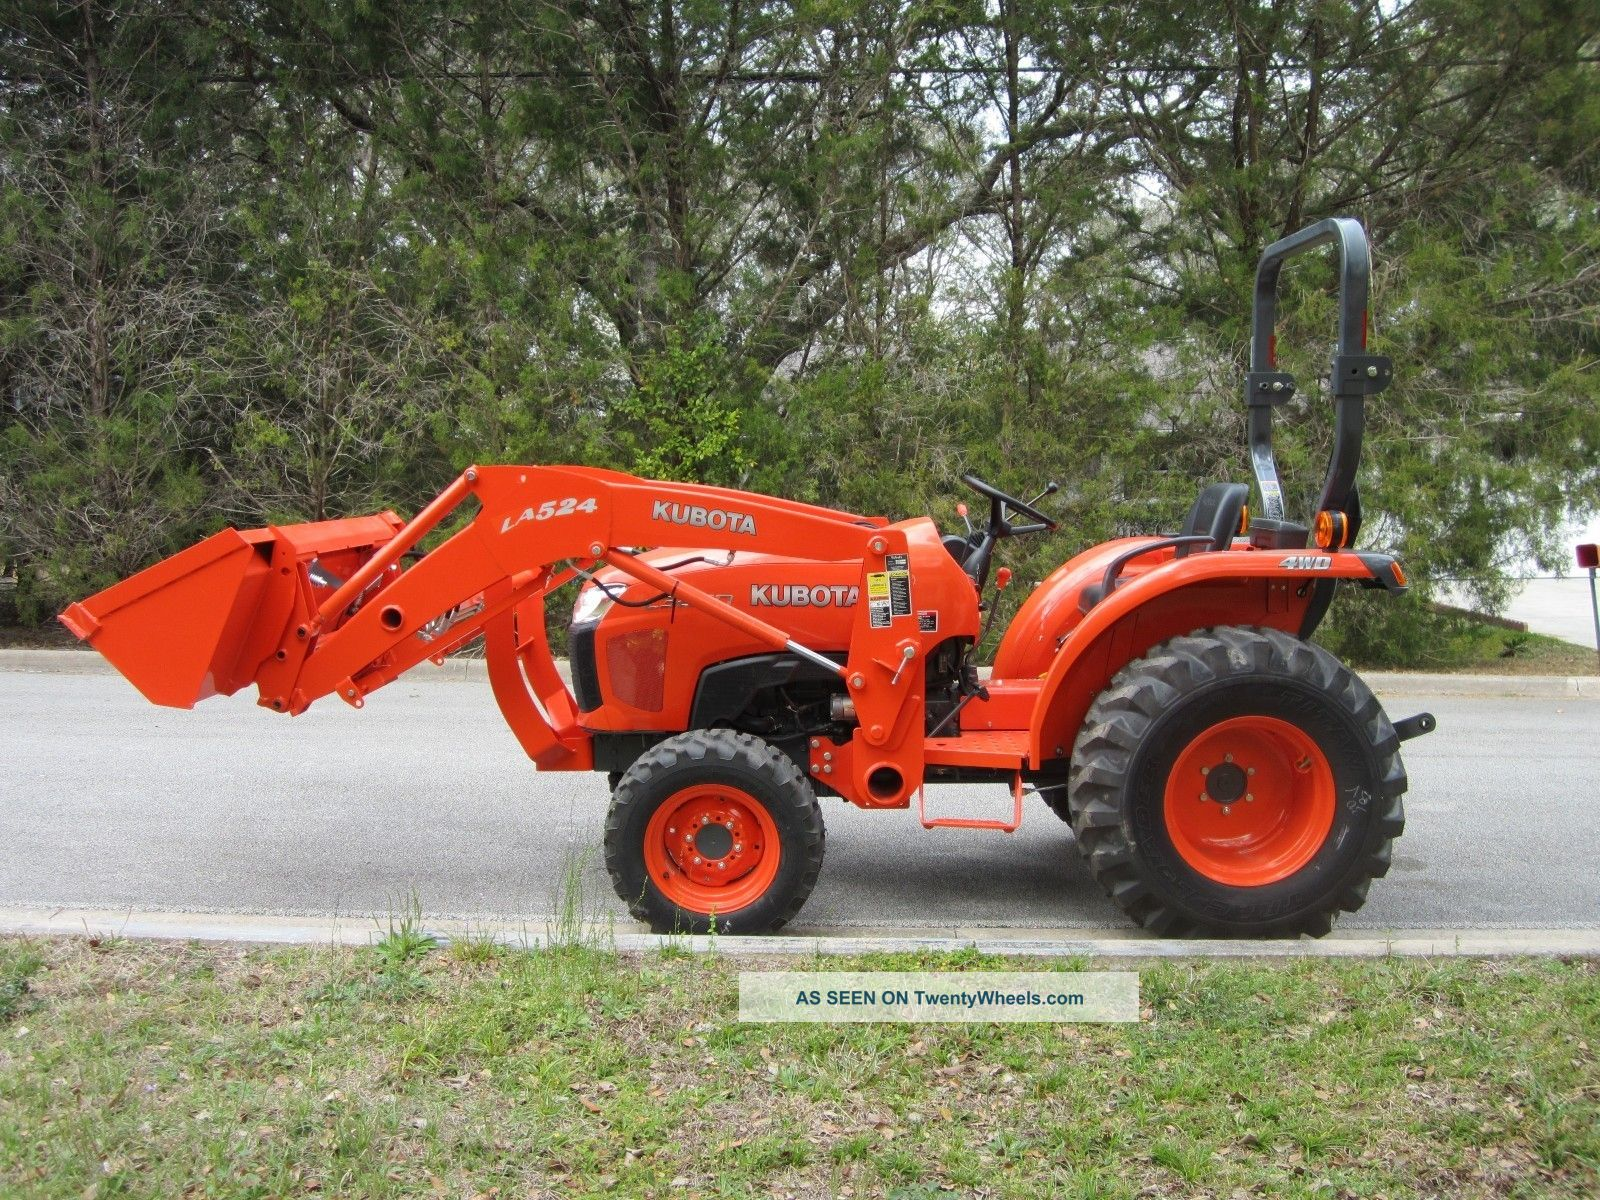 2013 kubota l3200 engine diagram 2013 kubota l3200 4x4 compact tractor only 15hrs. with an ...